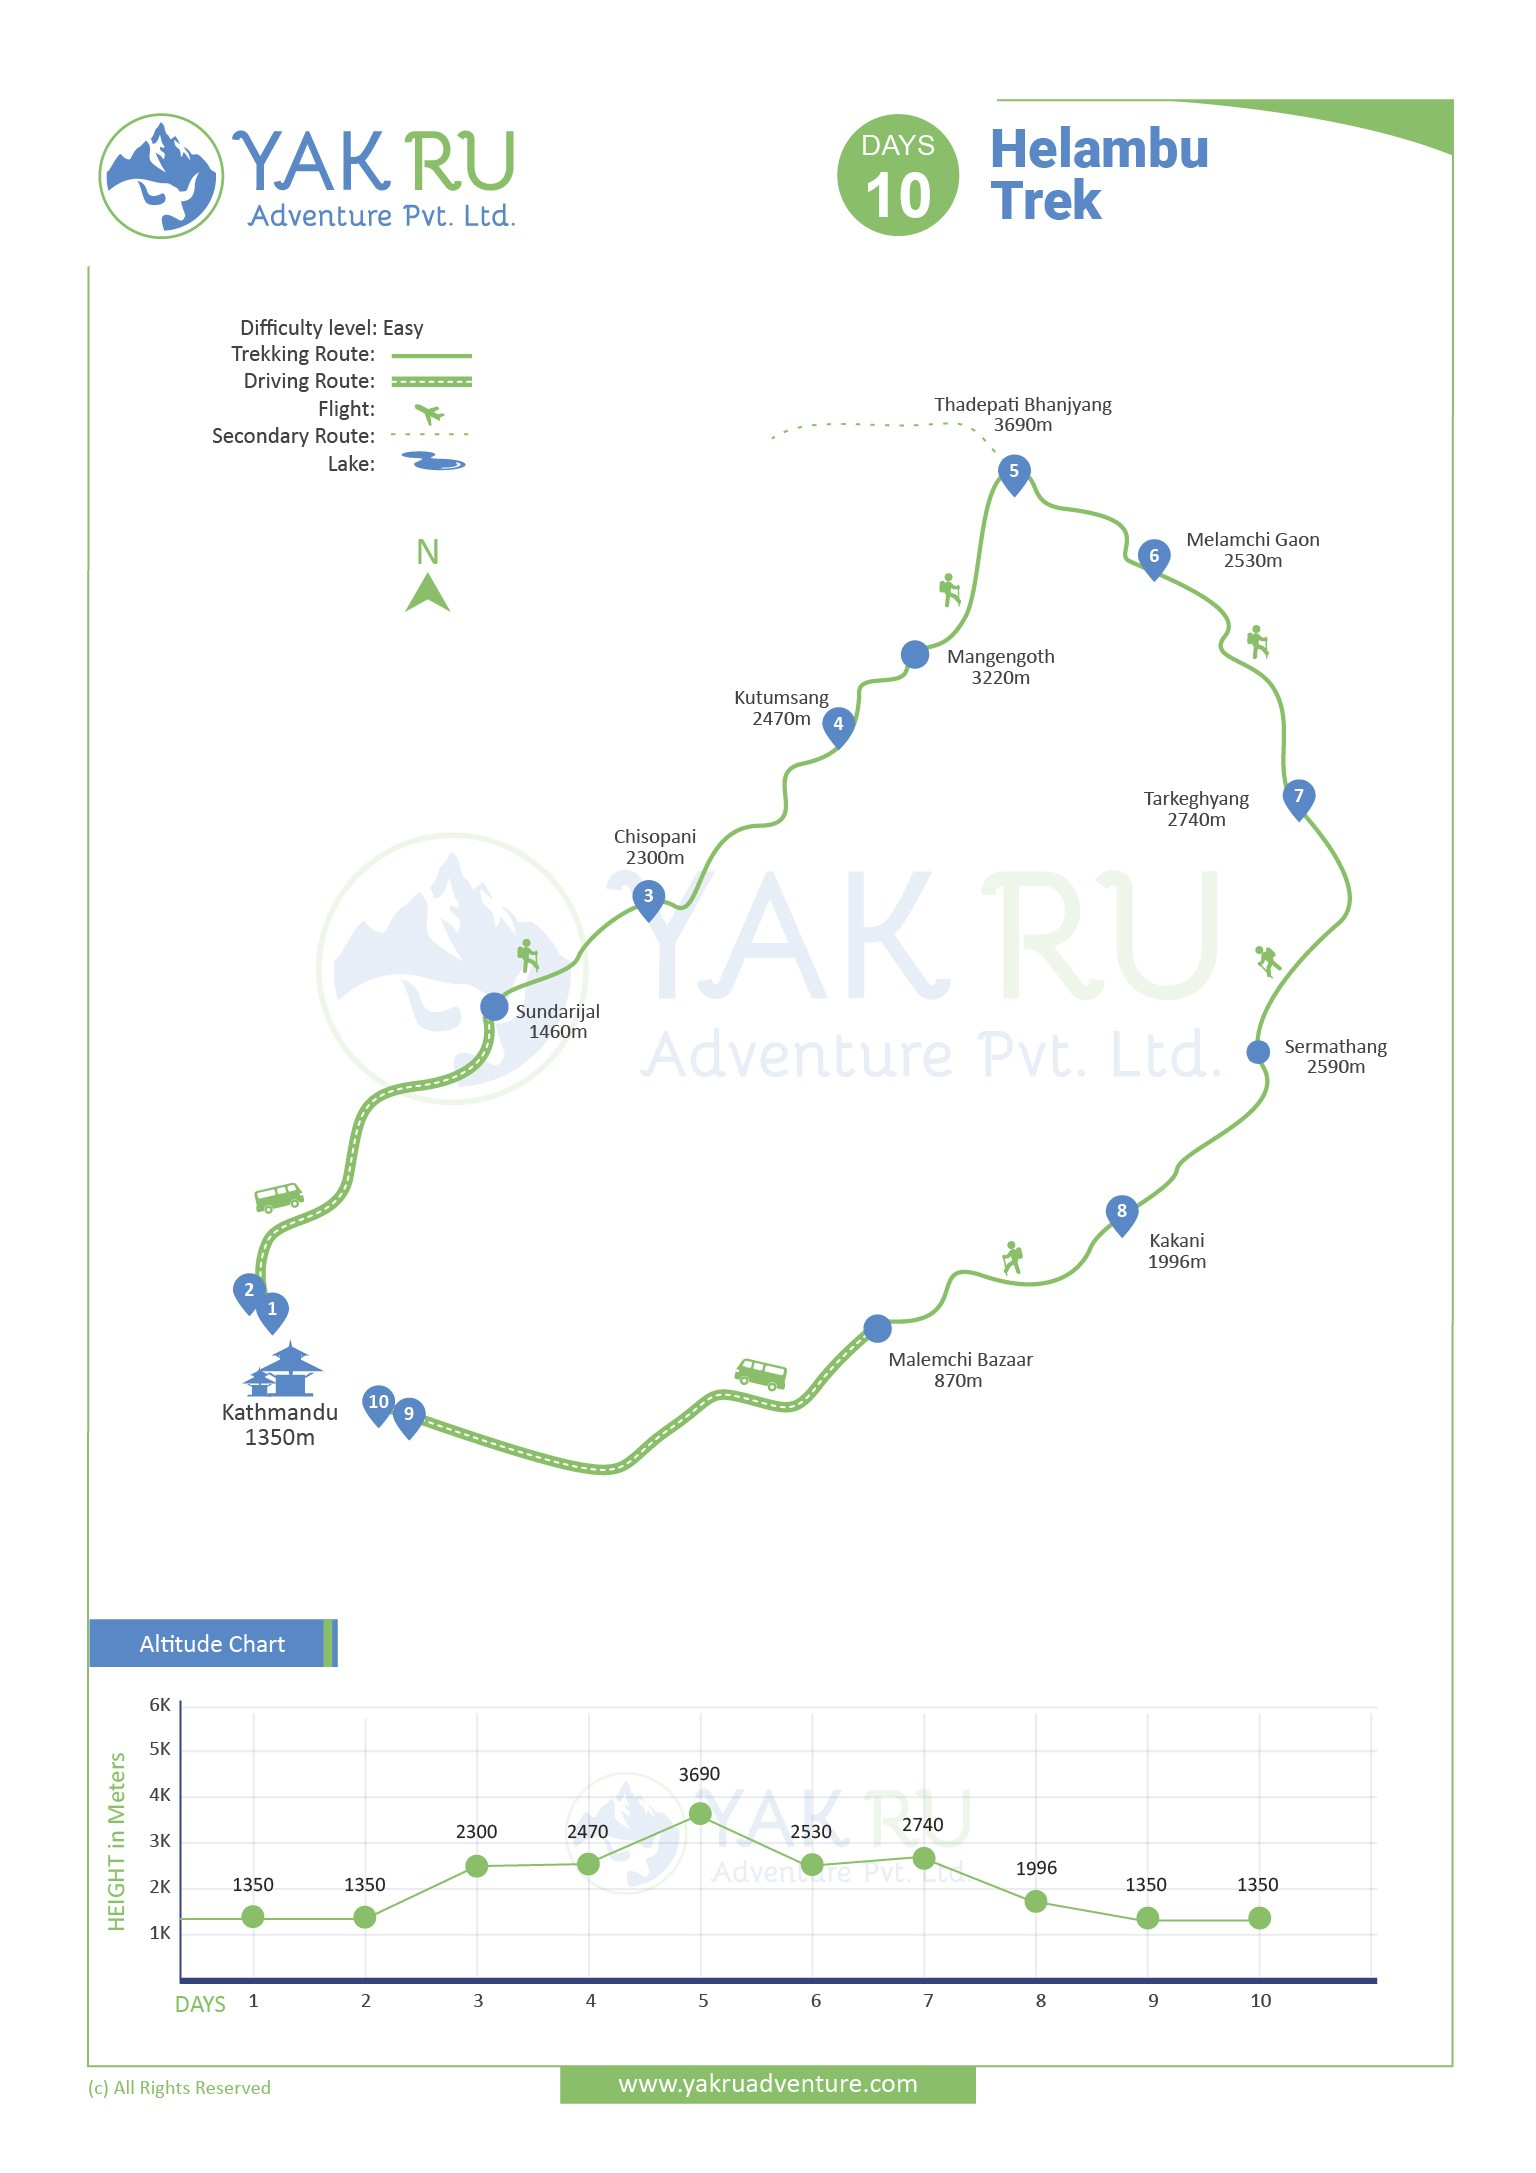 Helambu Trek map